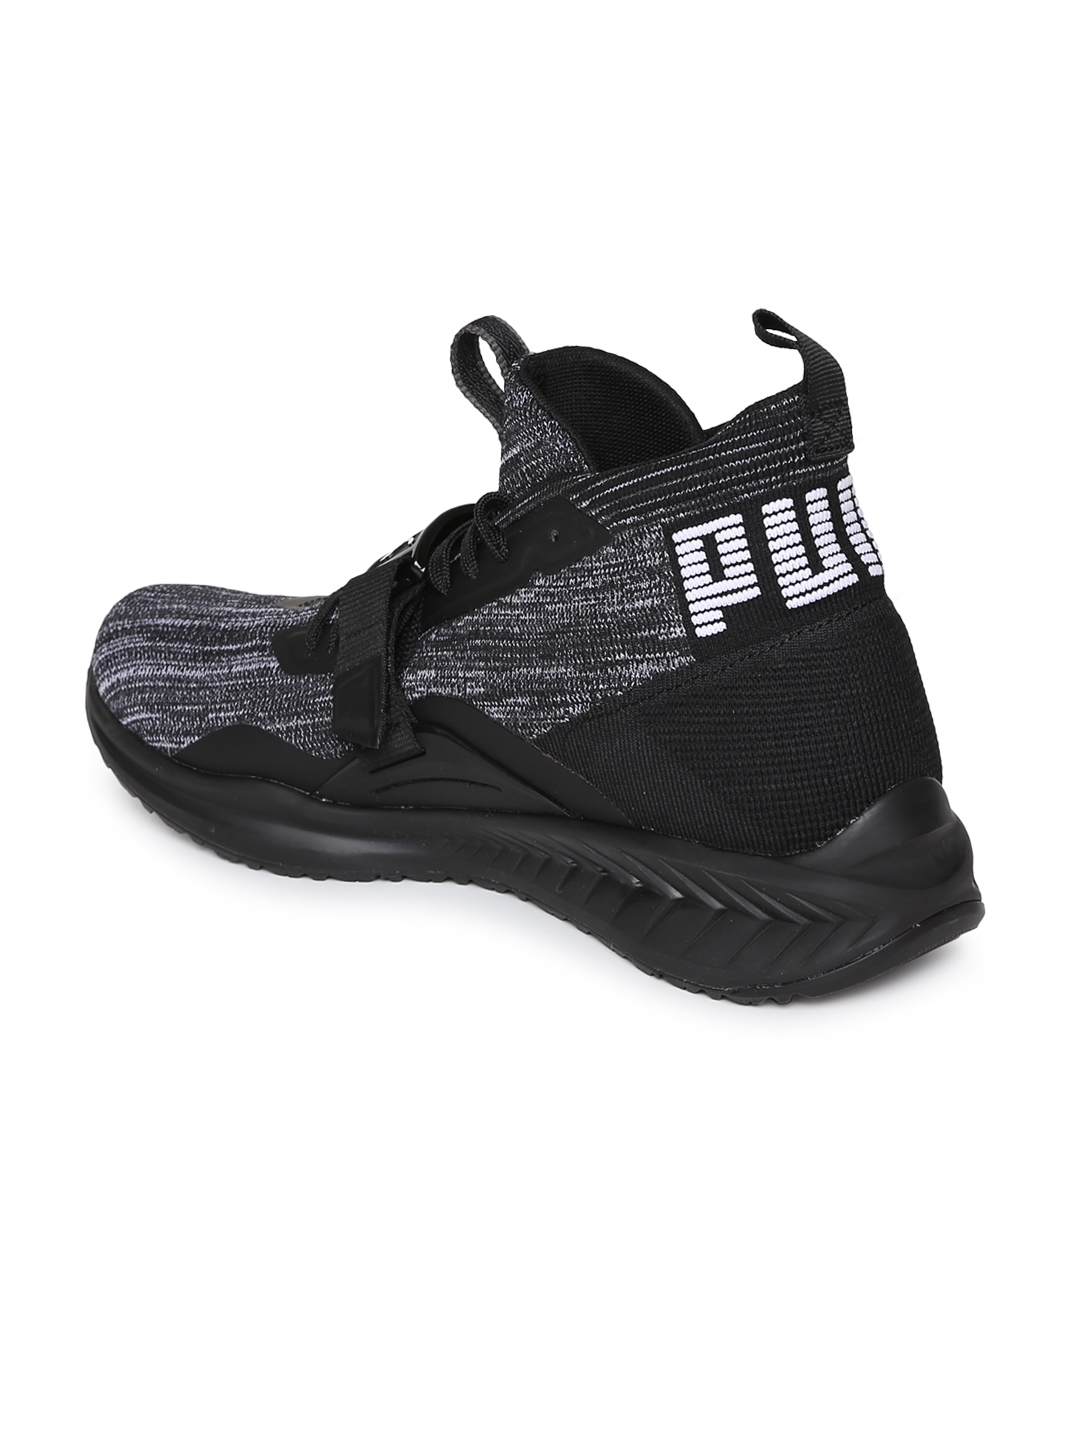 39909104d063 Buy Puma Men Charcoal IGNITE EvoKNIT 2 Running Shoes - Sports Shoes ...